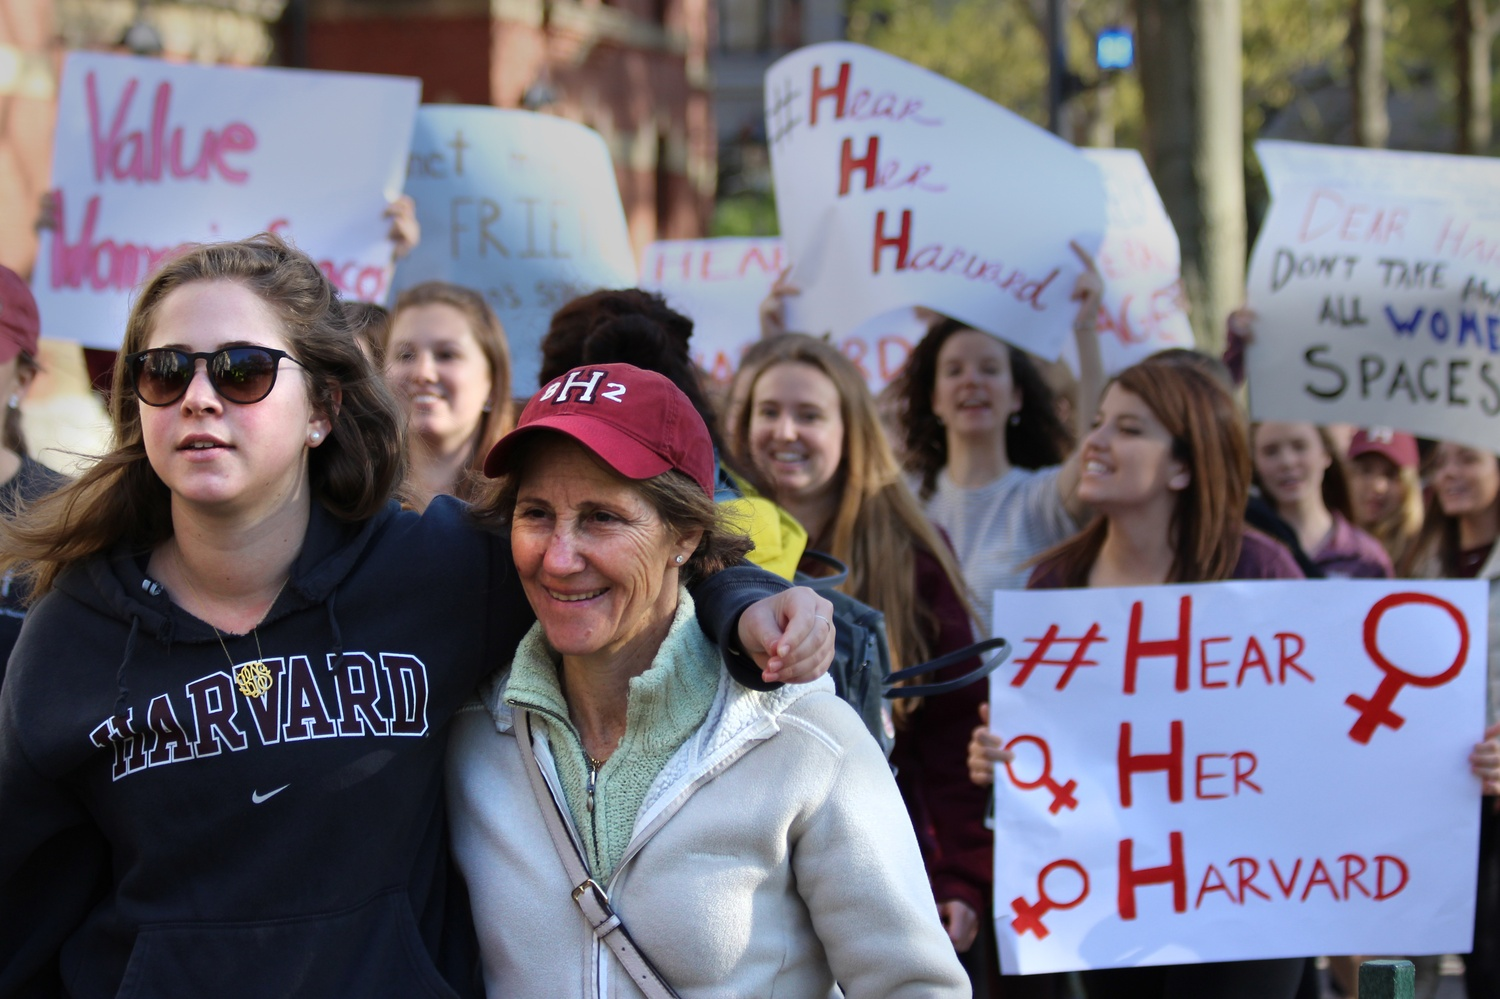 Kappa Kappa Gamma sorority member Elly Duker '19 marched with her mother, Julie Starr-Duker '82, at the #HearHerHarvard protest against newly-announced sanctions against unrecognized single-gender social organizations. More than 200 women rallied in front of Massachusetts Hall in response to the policy, which will bar members of such organizations from holding leadership positions in official clubs and receiving top fellowships.